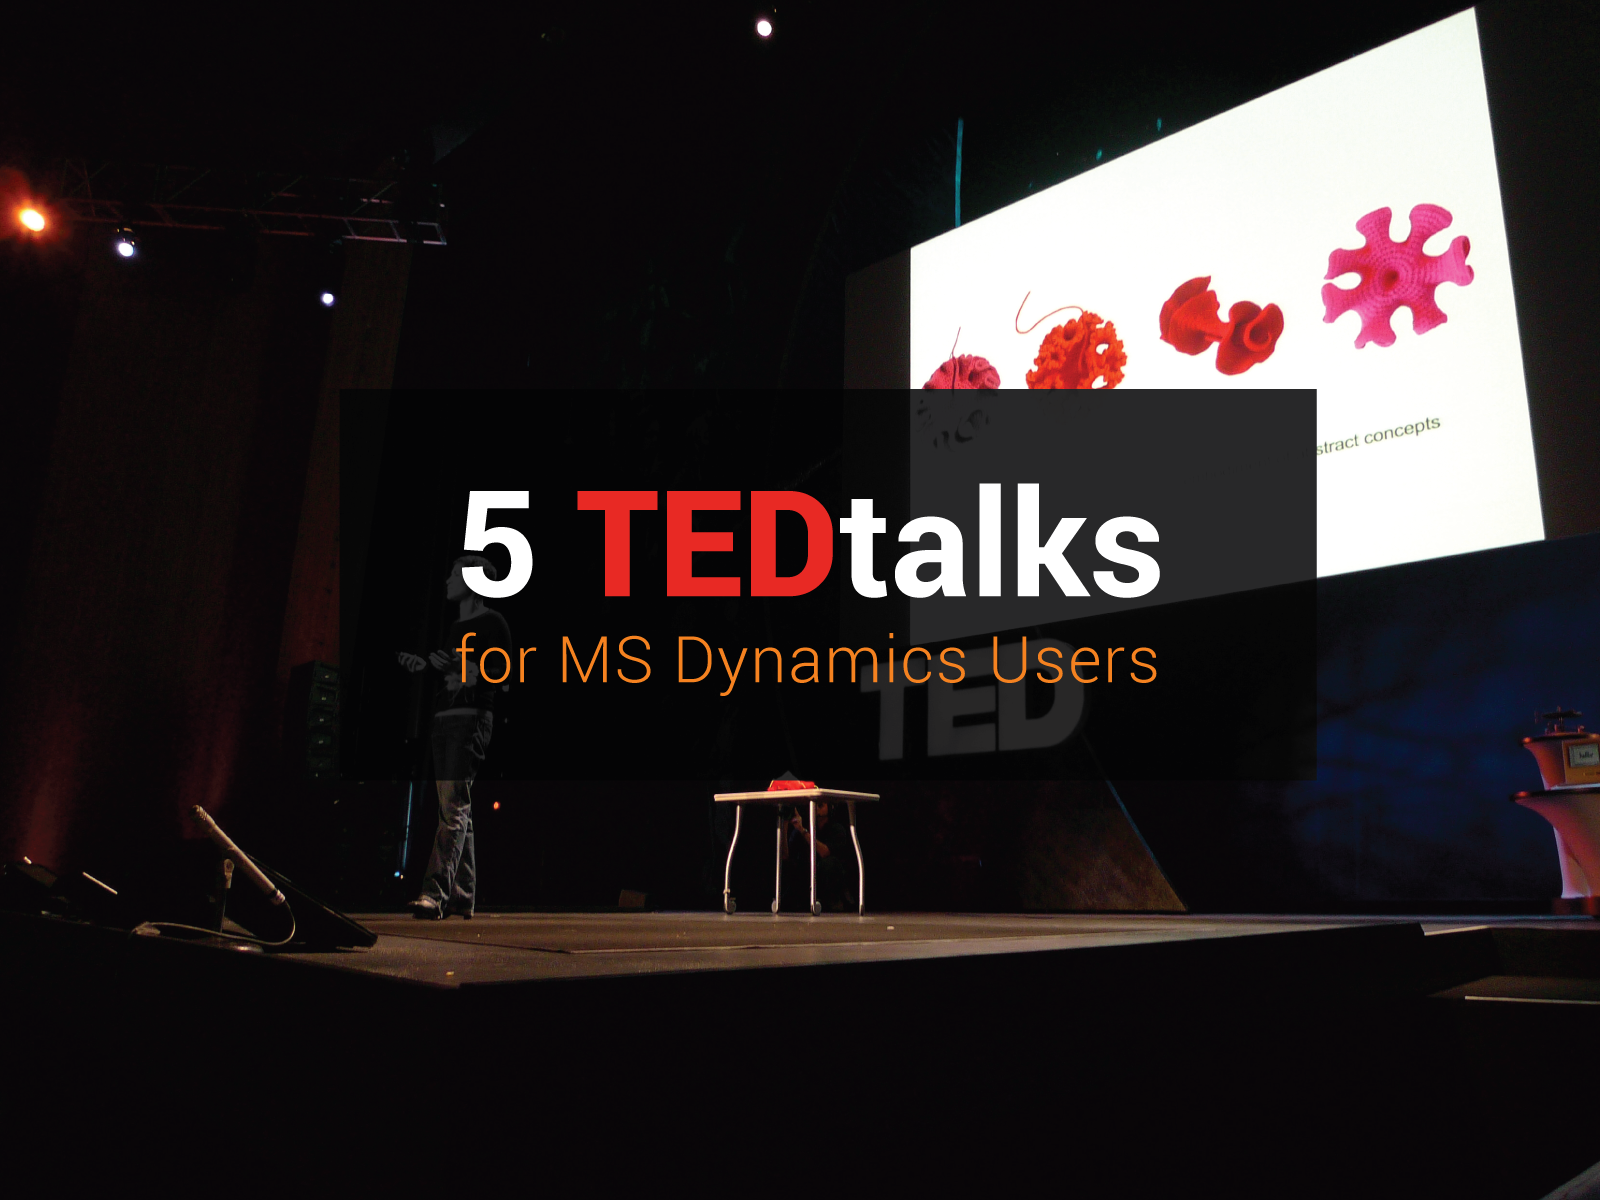 5 TEDtalks That MS Dynamics Users Will Eat Up